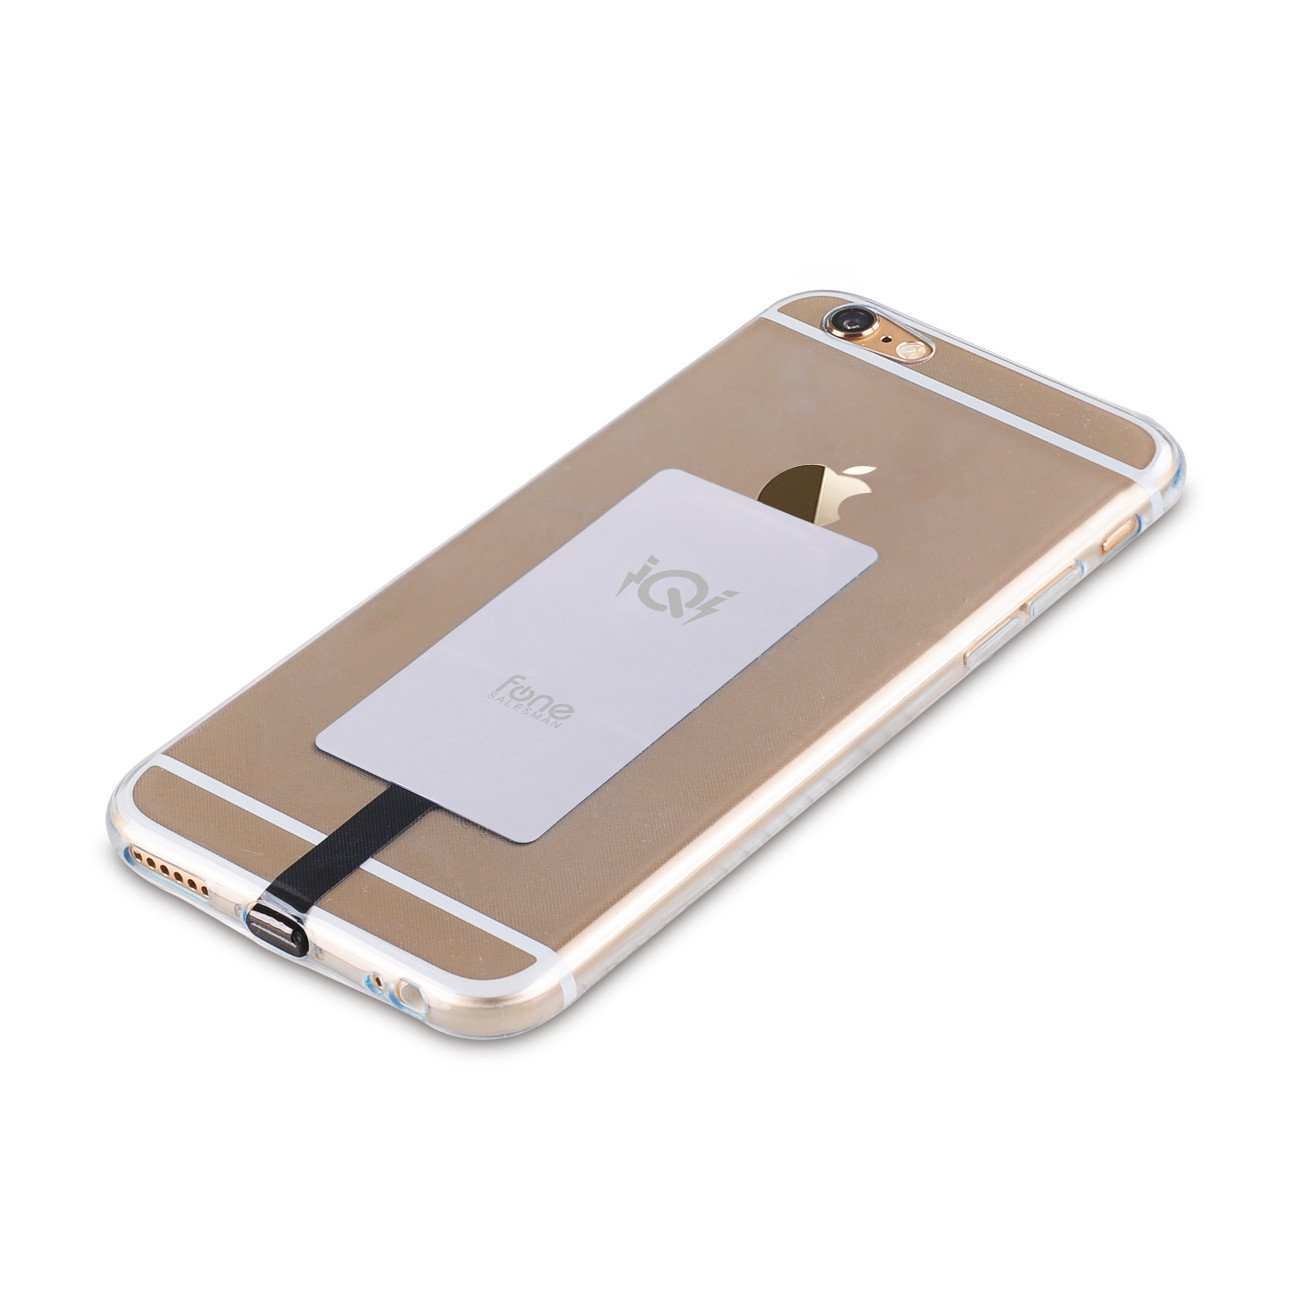 Iqi Mobile Wireless Charging Receiver Wire Center Voltage Regulator And Over Ov R15v00 Wiring Diagram Combined Qi For Apple Iphone Fonesalesman Rh Com Case